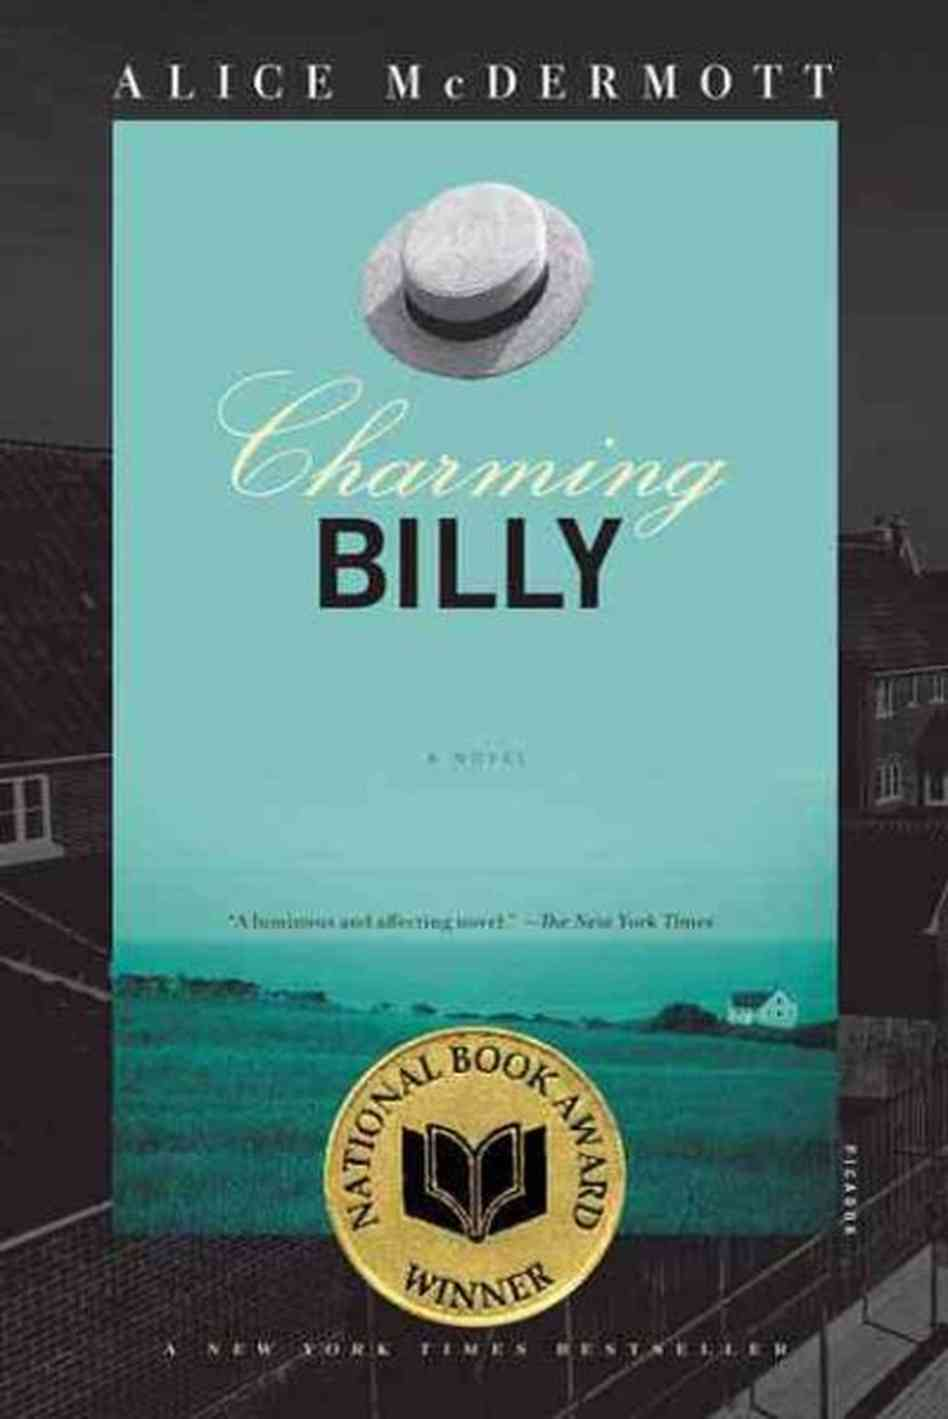 Charming Billy by Alice McDermott book cover